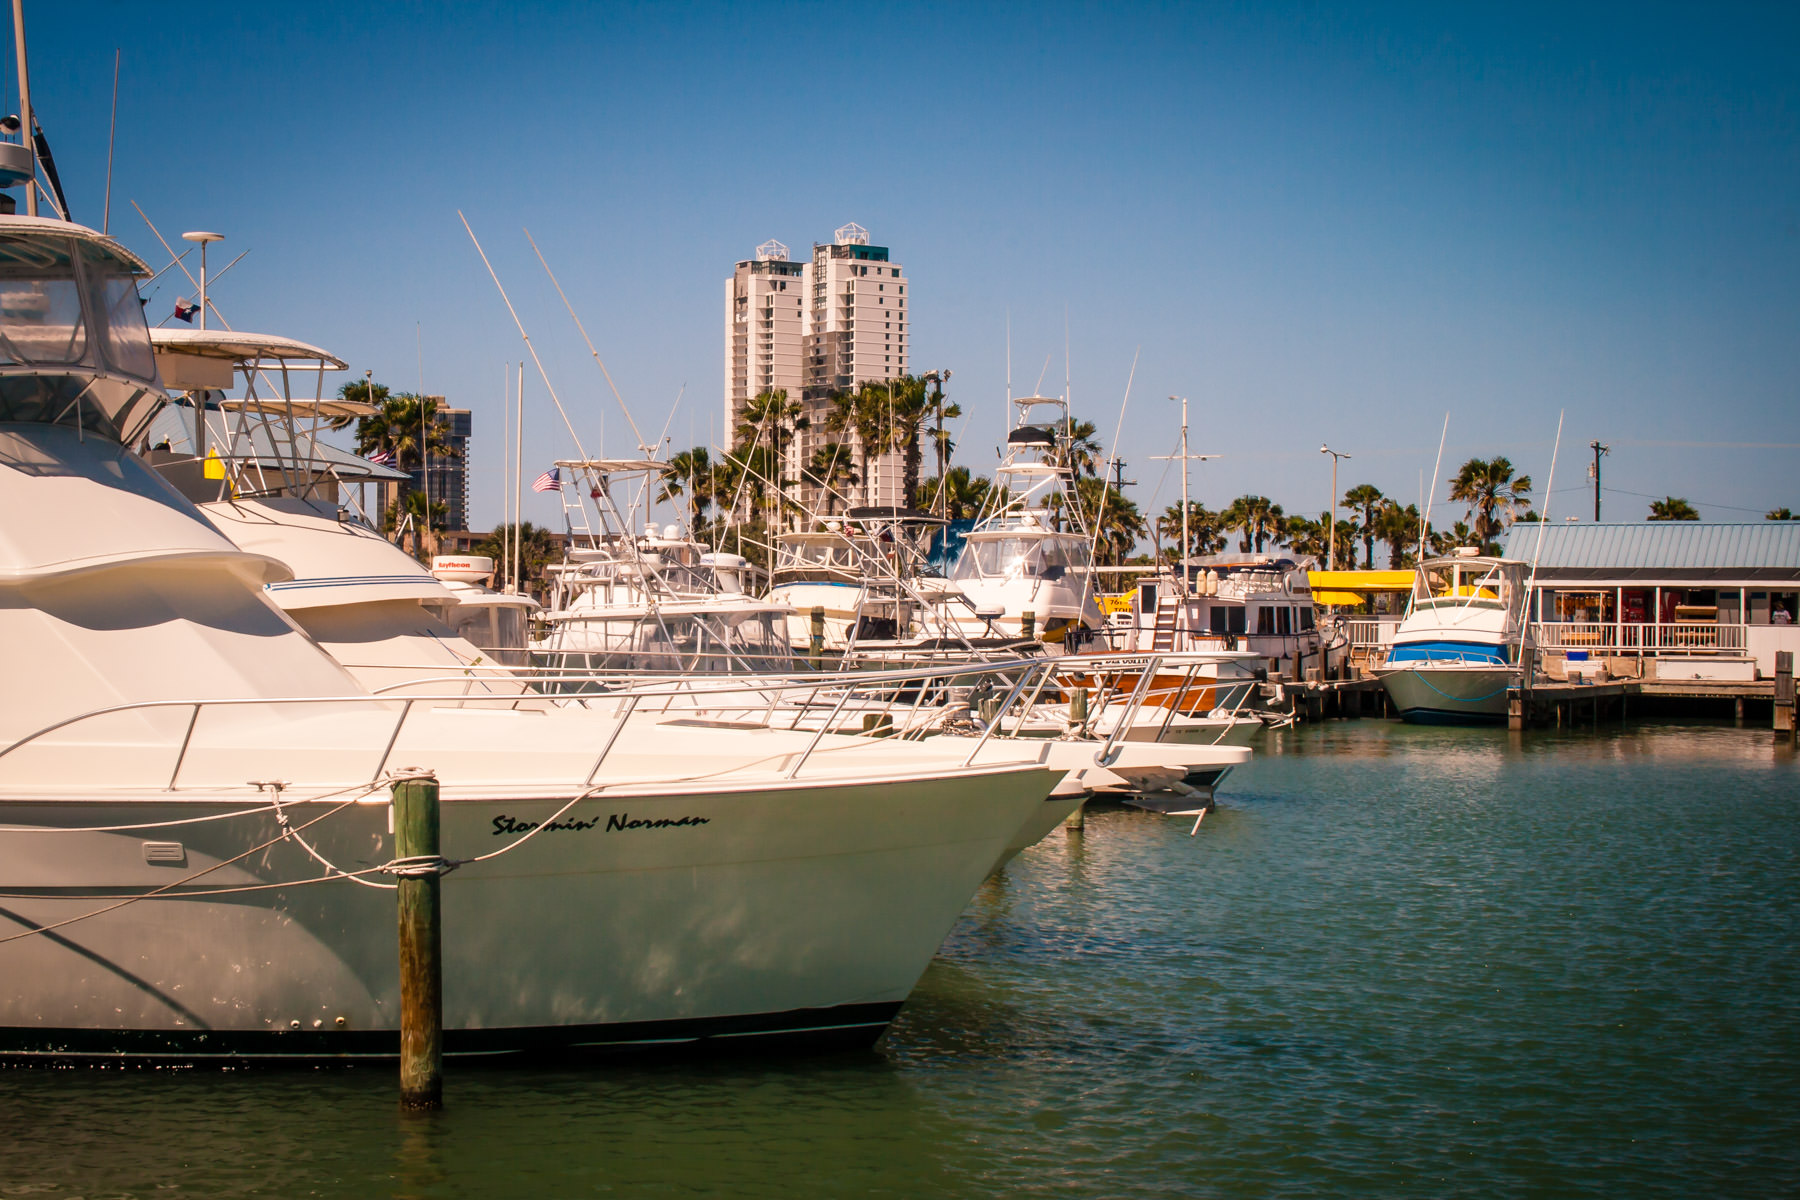 Boats docked in South Padre Island, Texas.